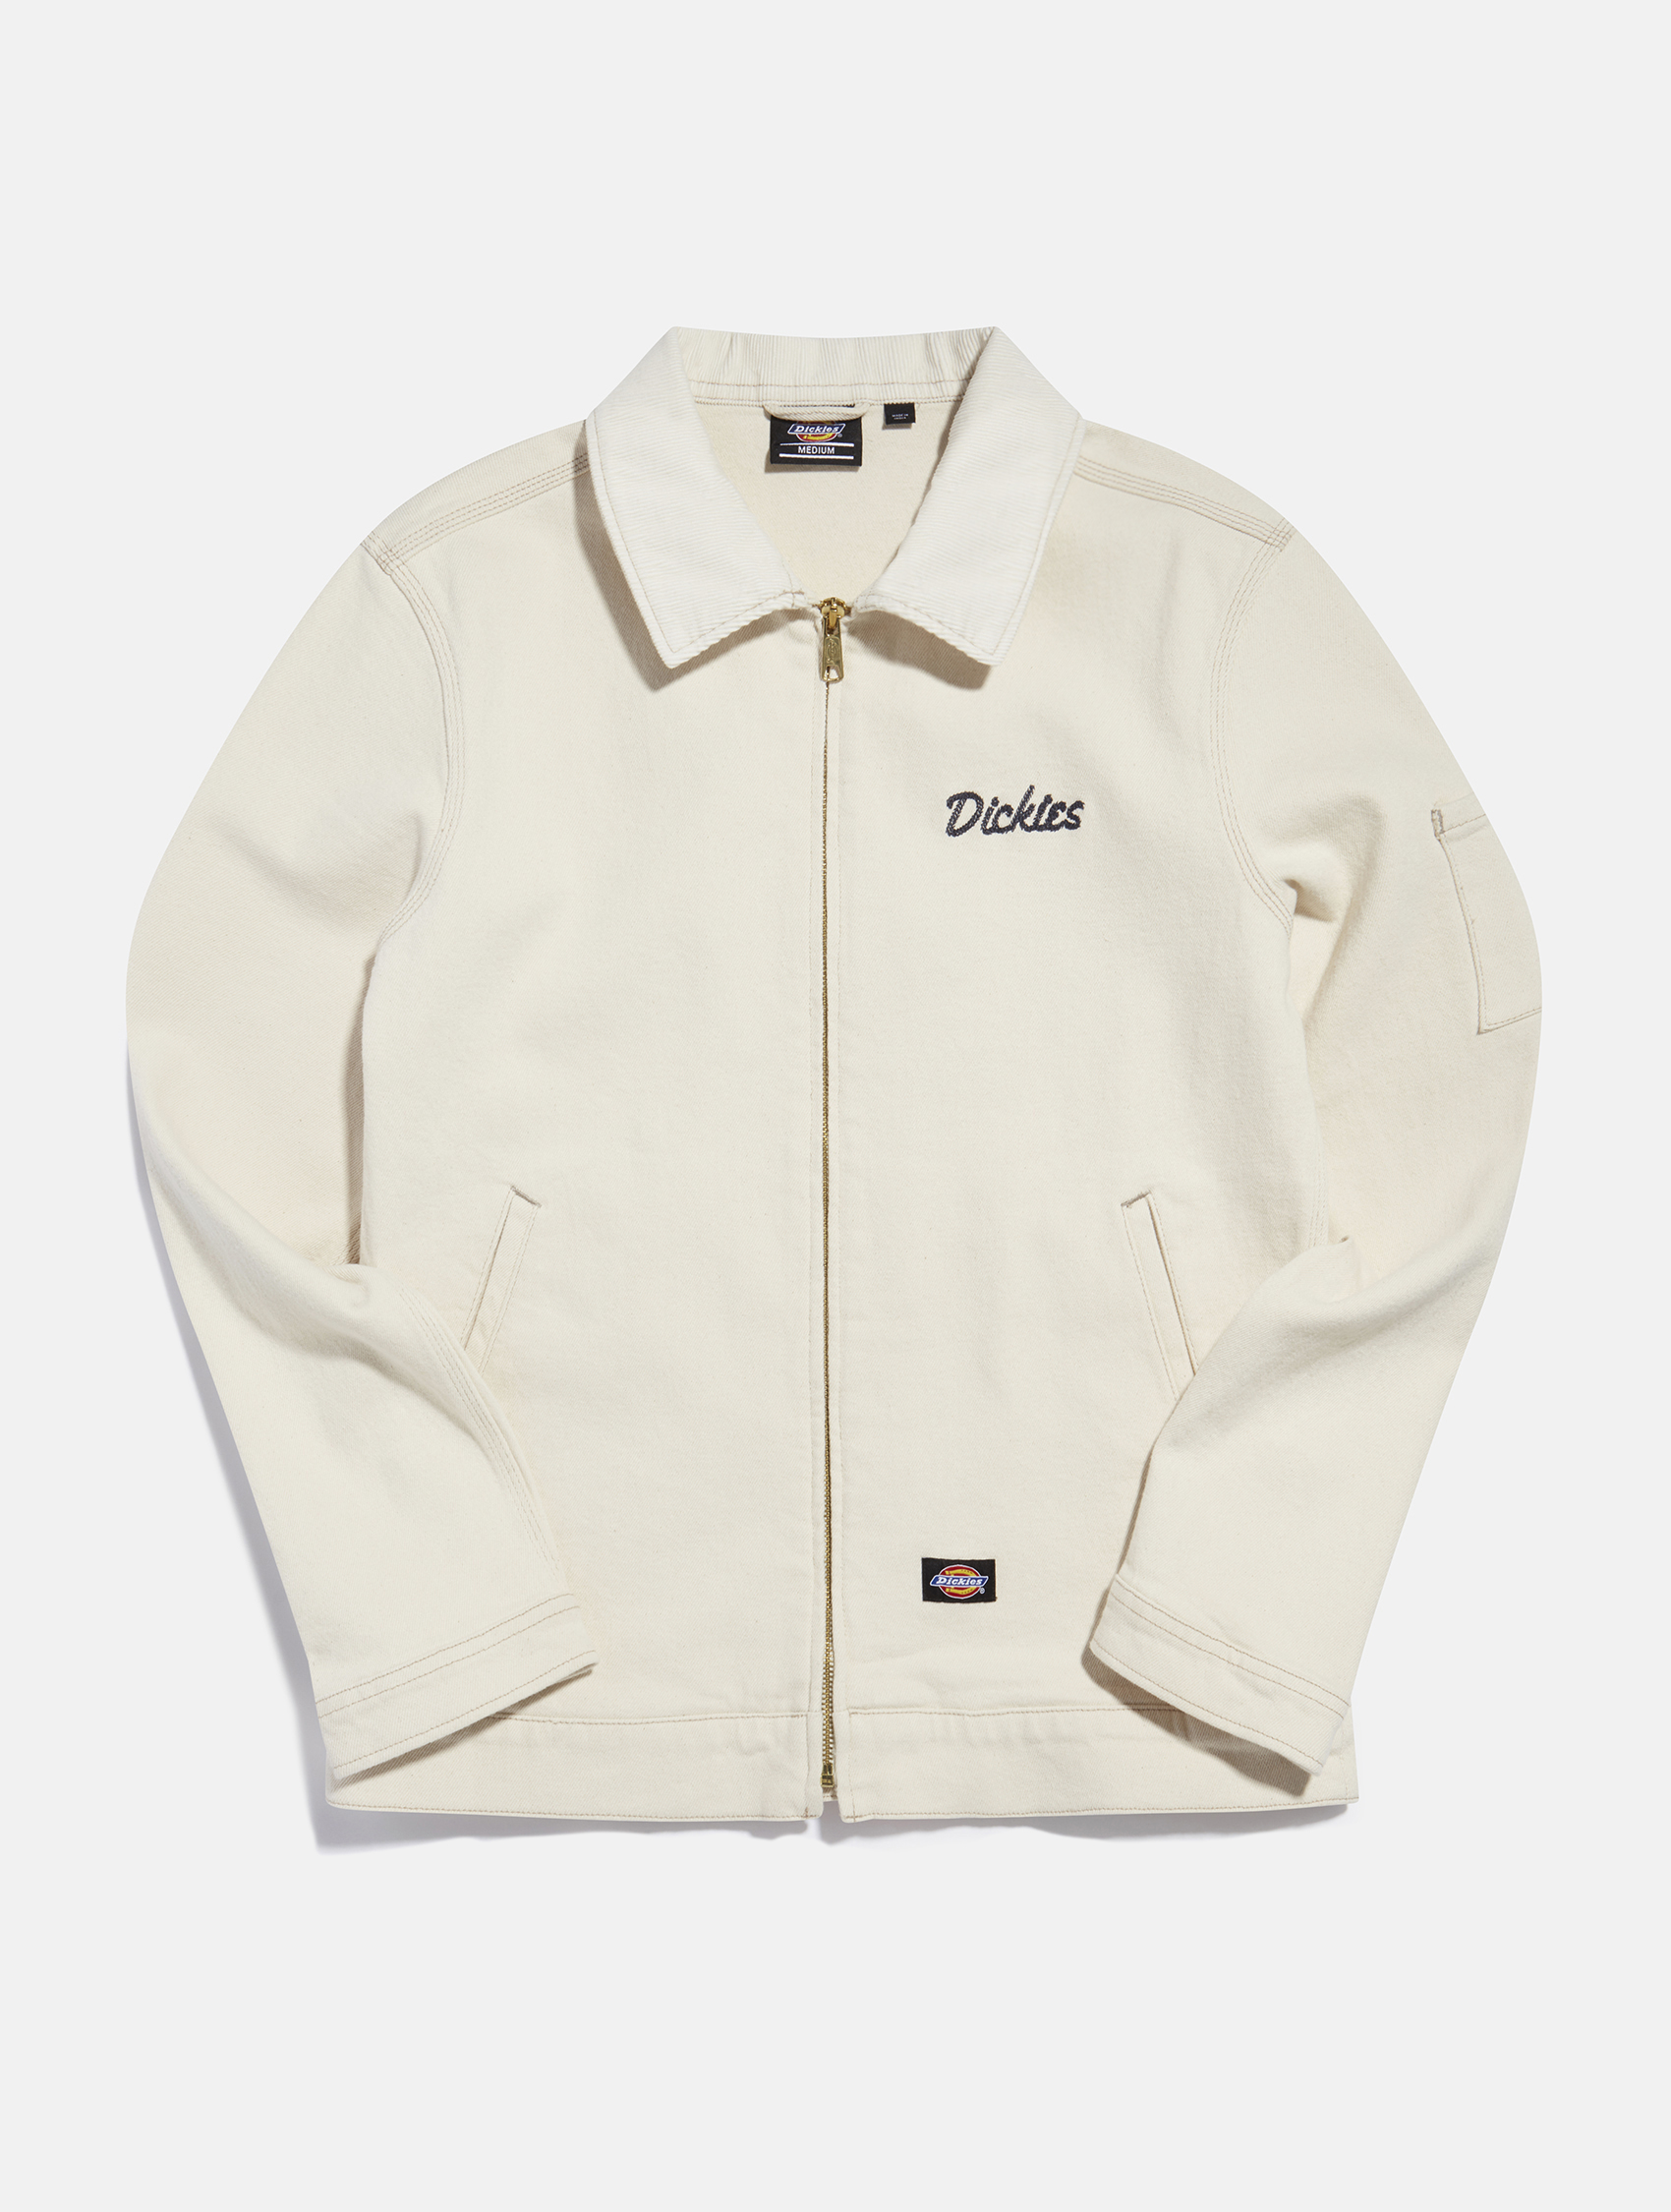 White long sleeve shirt,jacket by Dickies   eCommerce Photography London